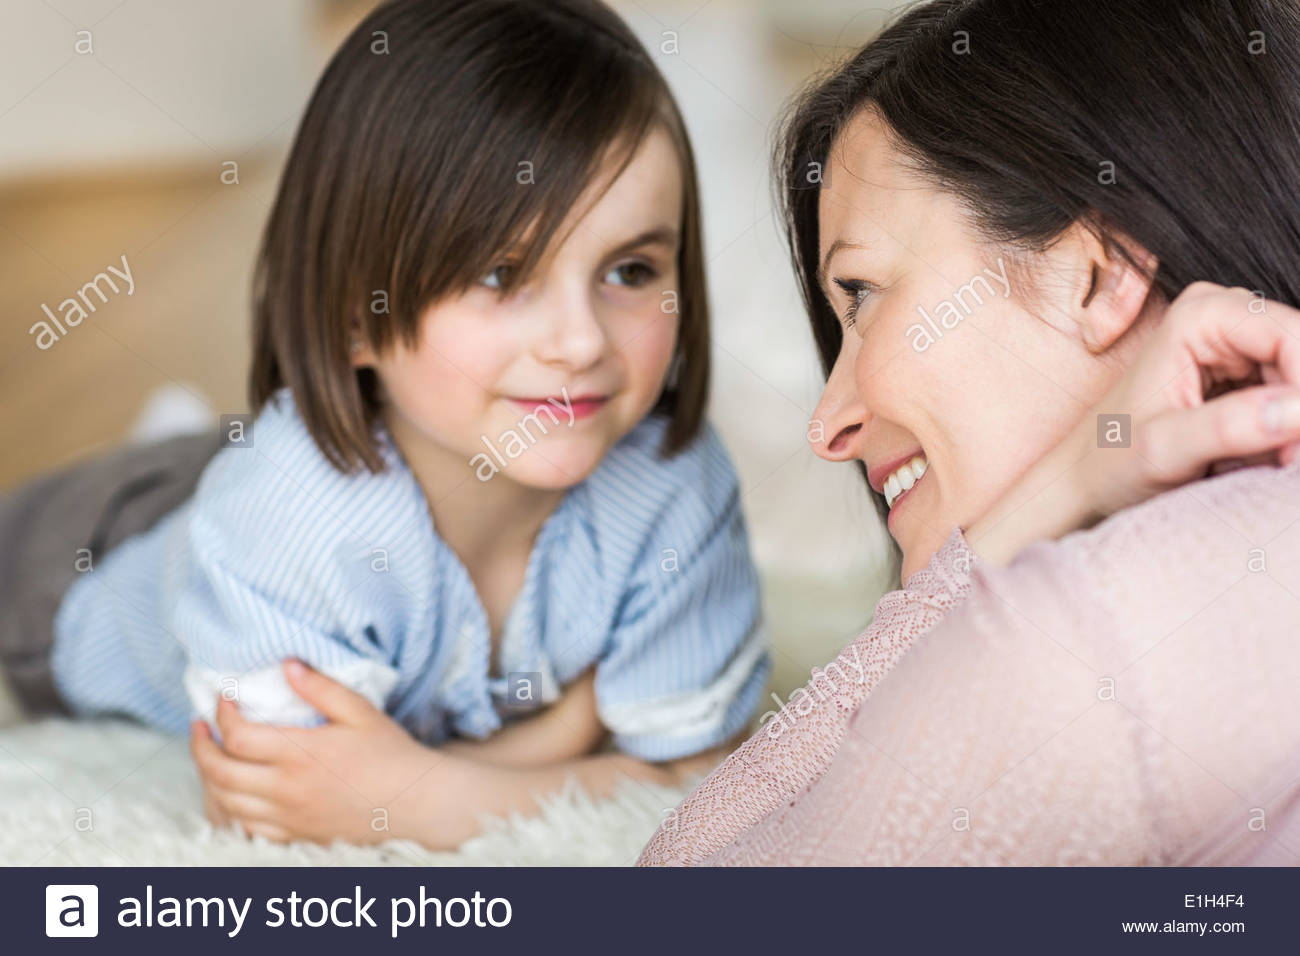 Mother and daughter face to face - Stock Image